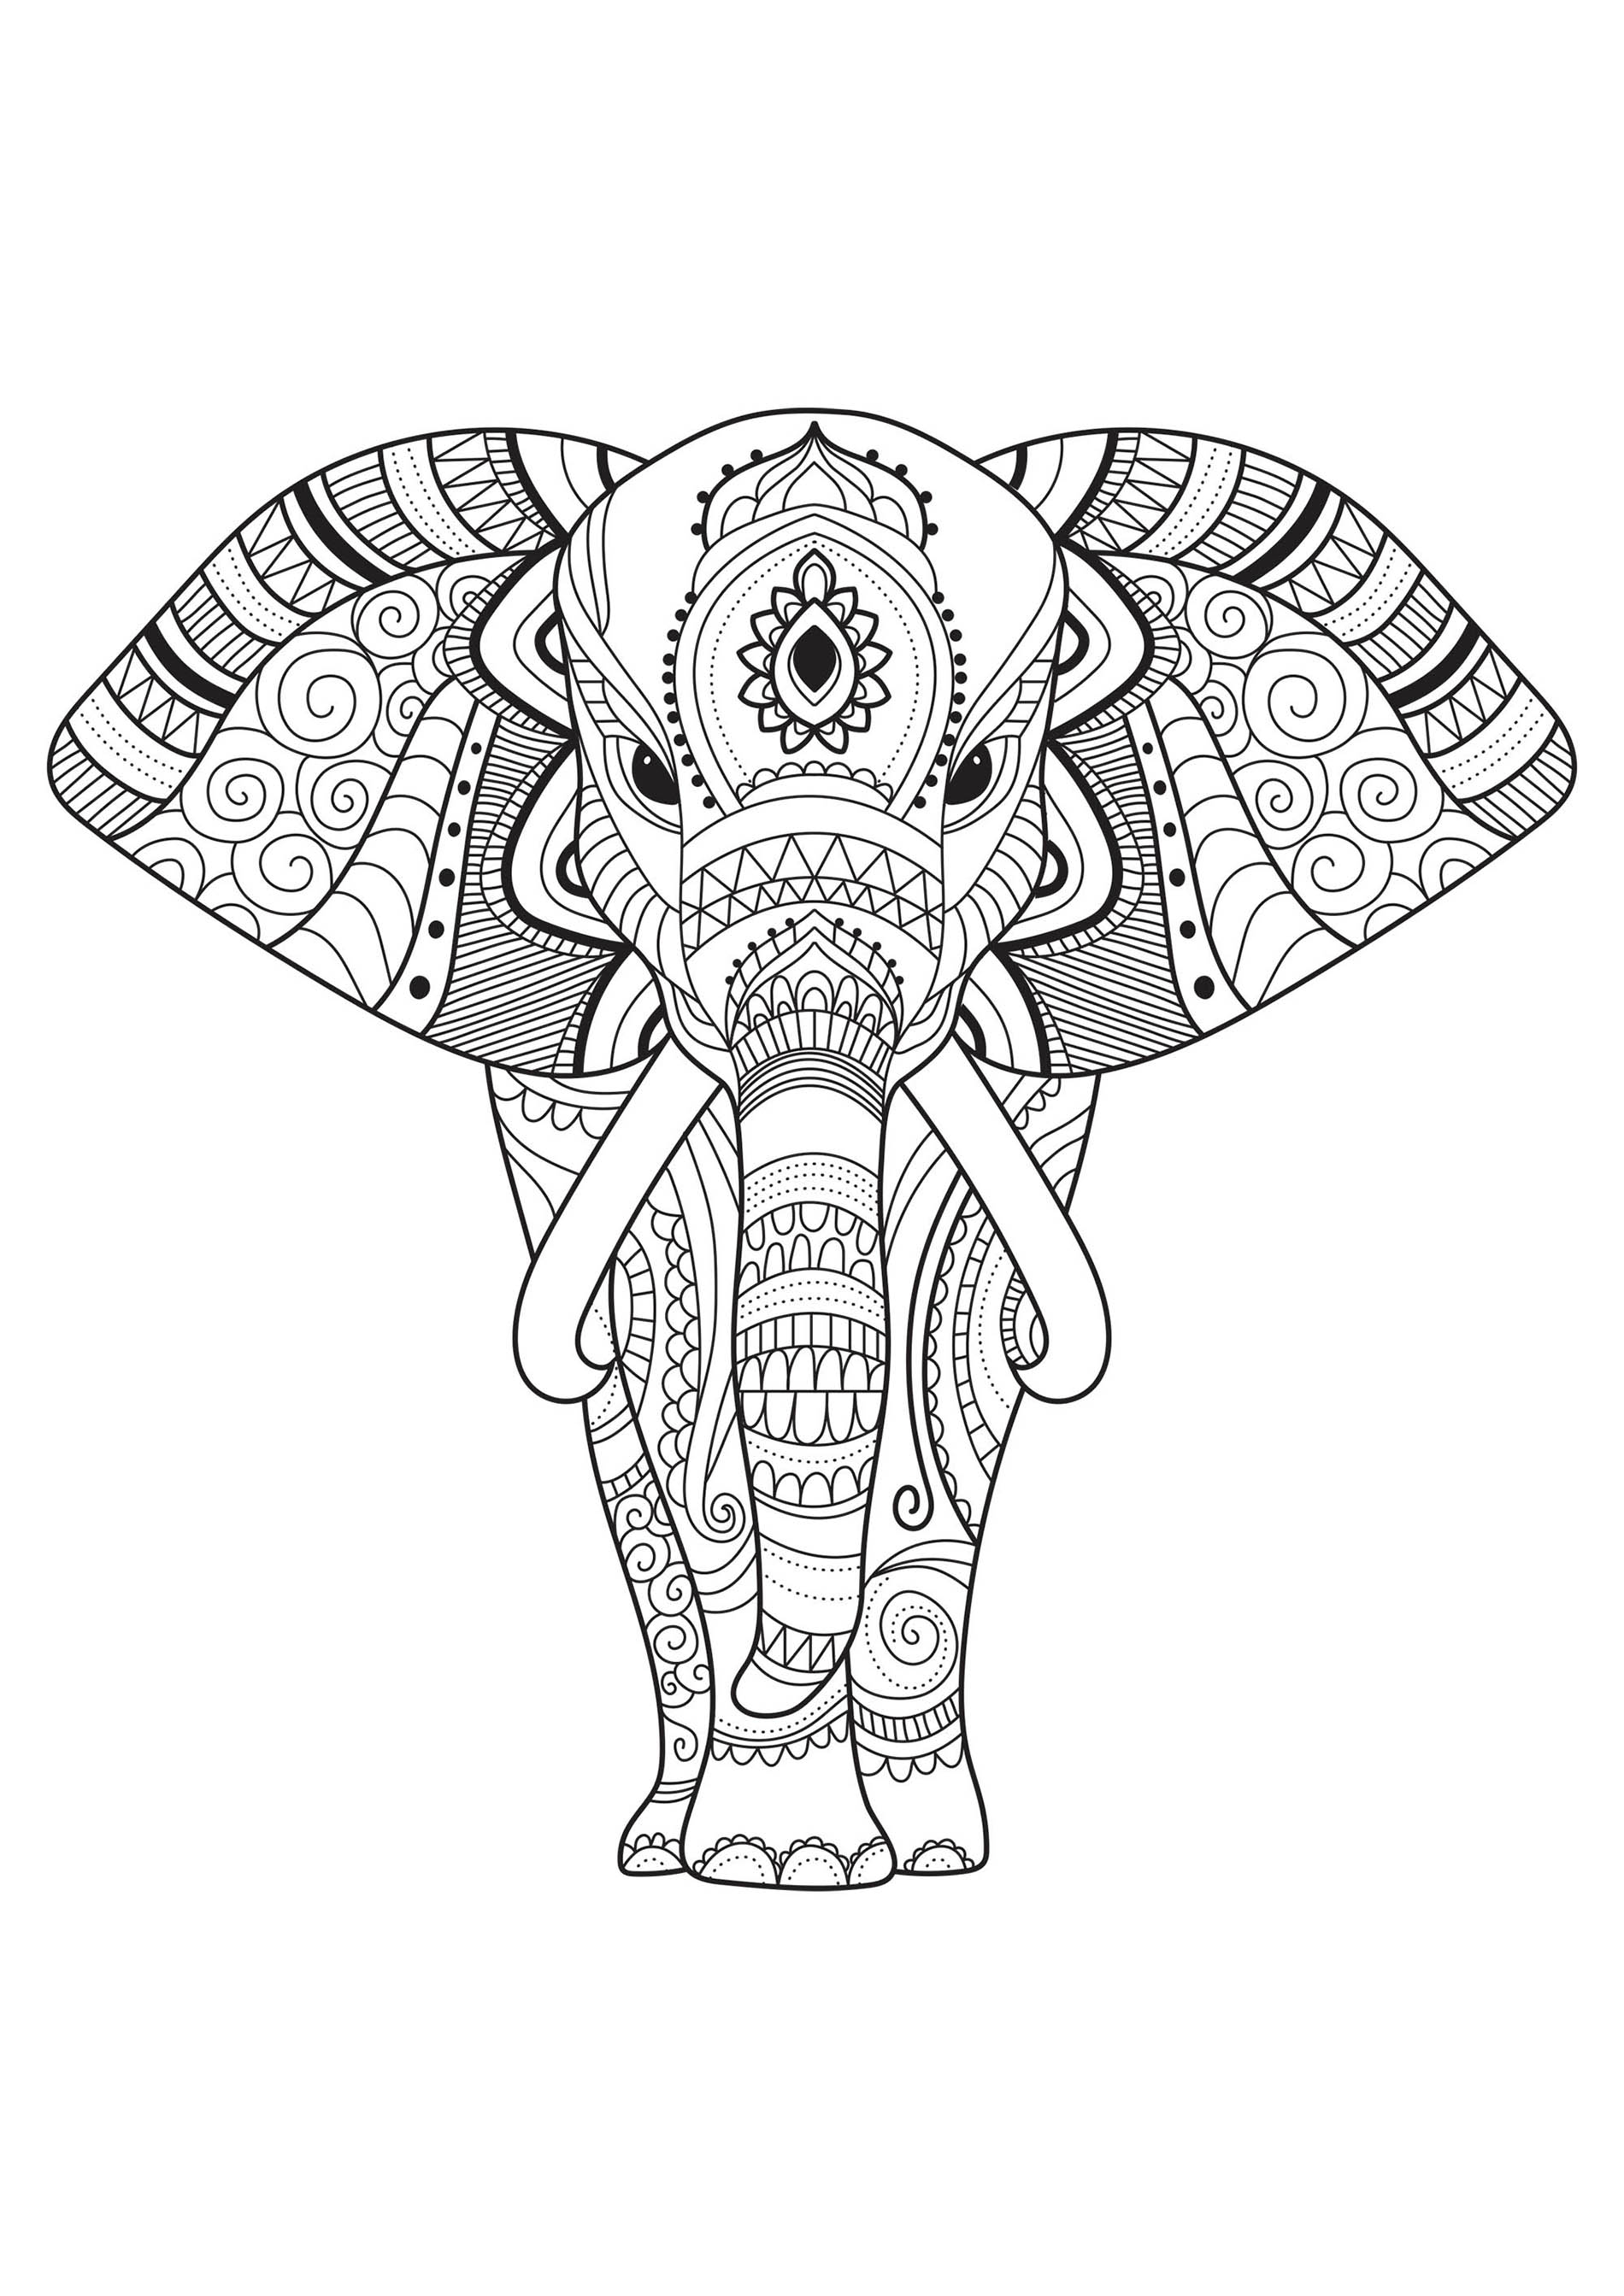 coloring book elephant images elephants for children elephants kids coloring pages book elephant coloring images